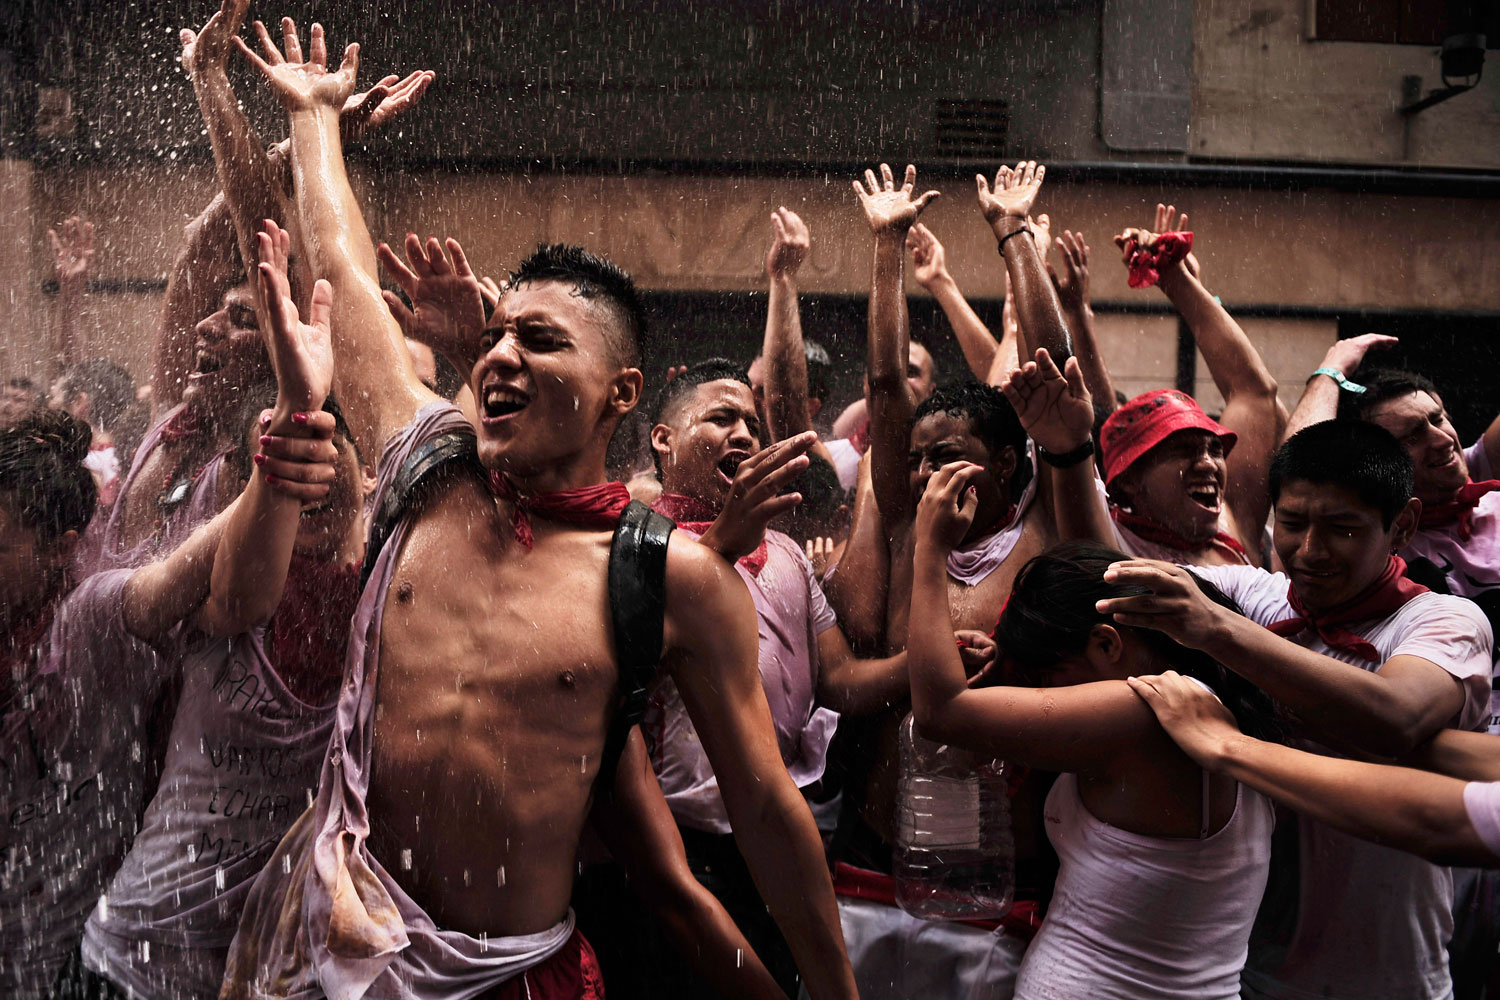 July 6, 2011. Revelers celebrate the Chupinazo—the official start of the San Fermín fiestas in Pamplona, Spain.. The festival, which was glorified in Ernest Hemingway's 1926 novel The Sun Also Rises, is known around the world for the daily running of the bulls.